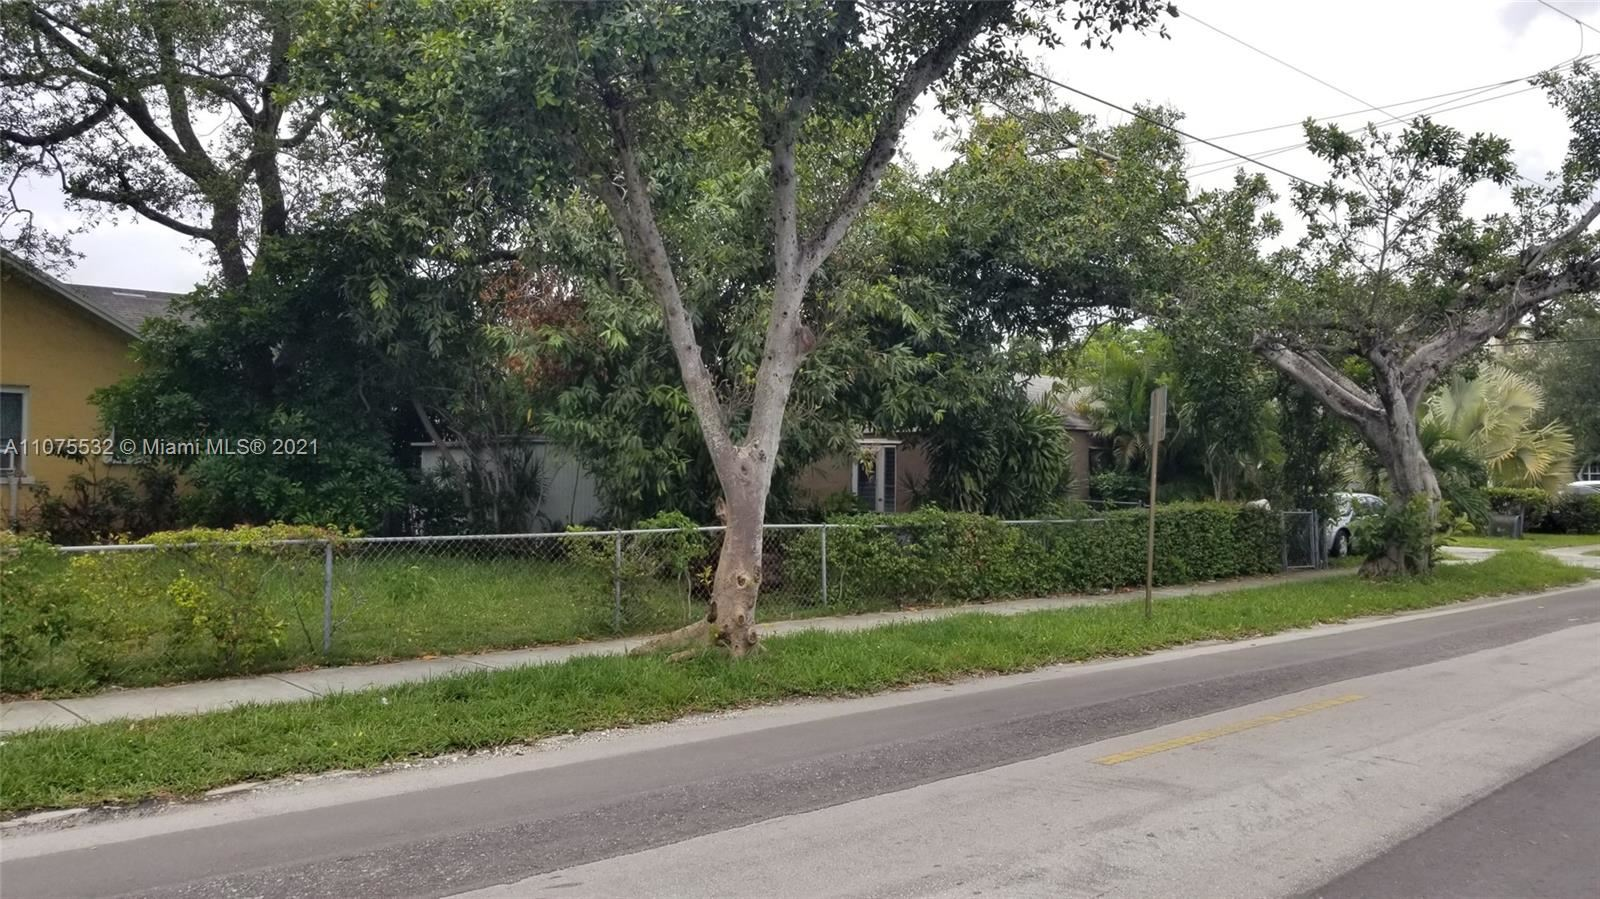 416 S 19th Ave, Hollywood, FL 33020 - #: A11075532